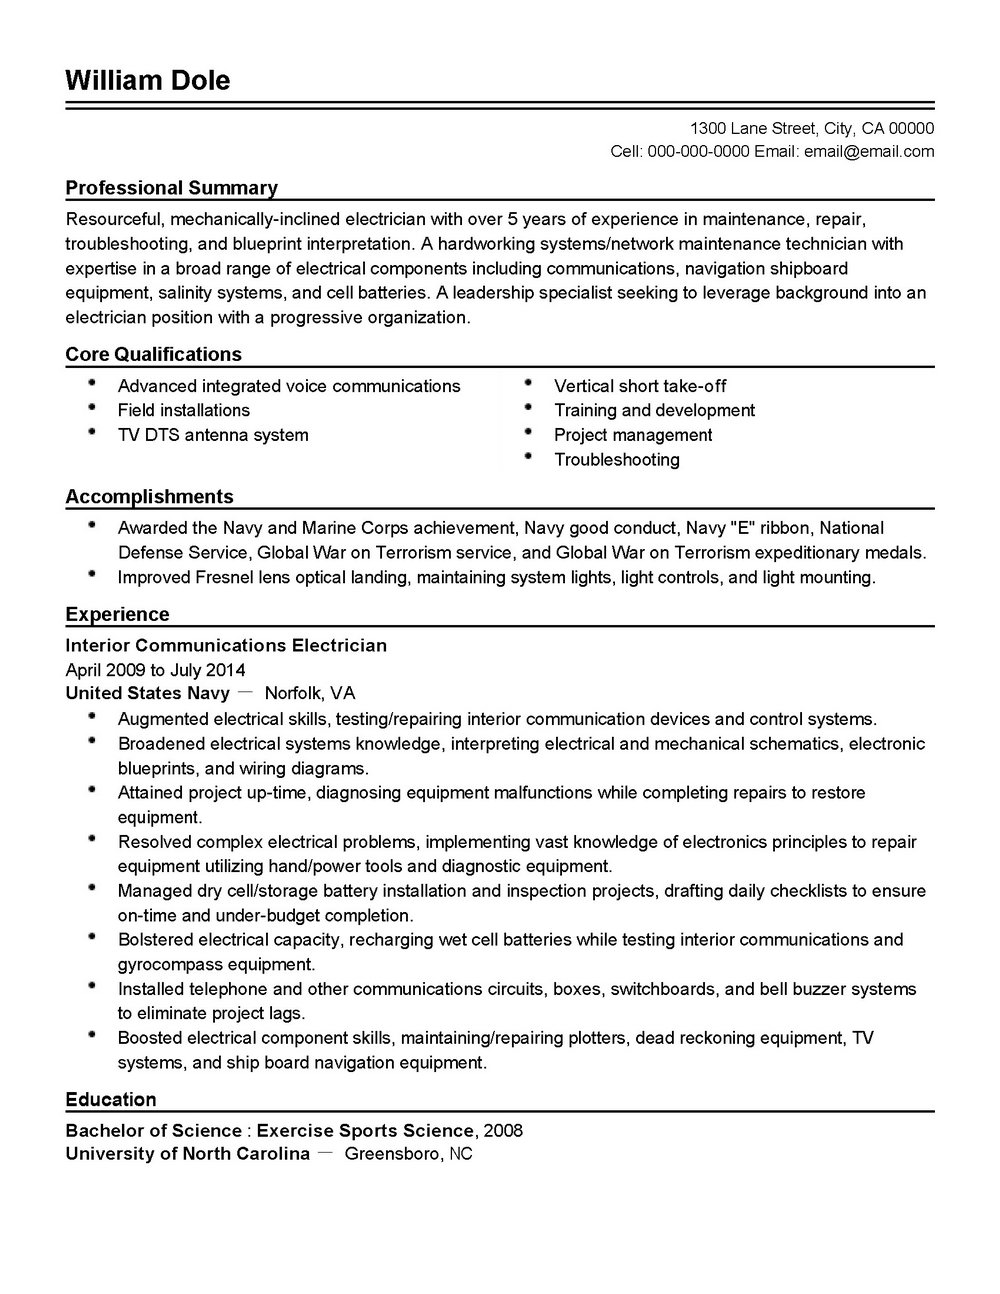 Professional Resume Writers Charlotte Nc